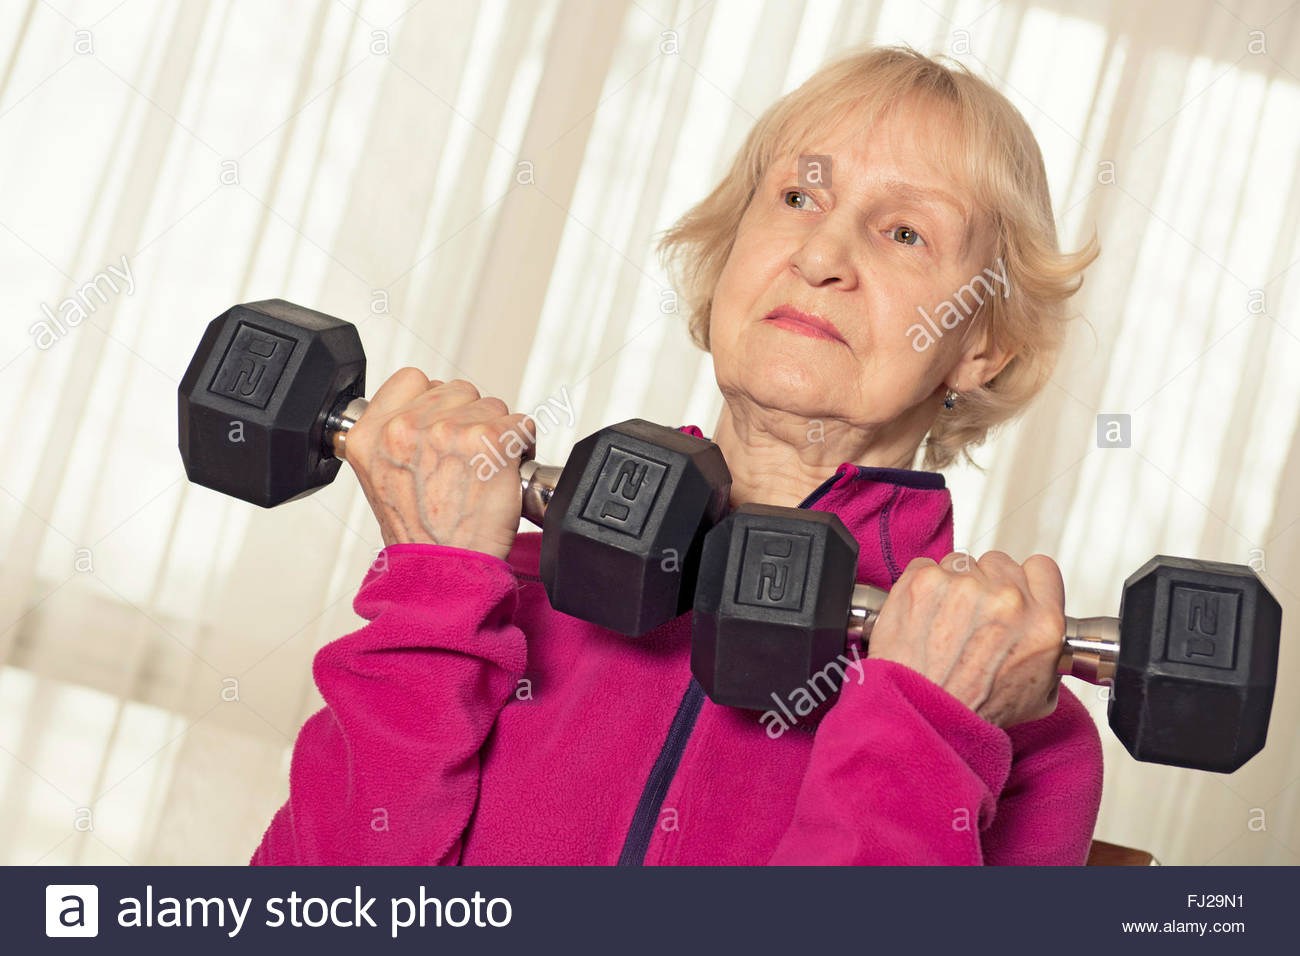 Senior Woman Dumbbells, Elderly Lifting Weights, Weight Training with Dumbbell, 77 year old - Stock Image